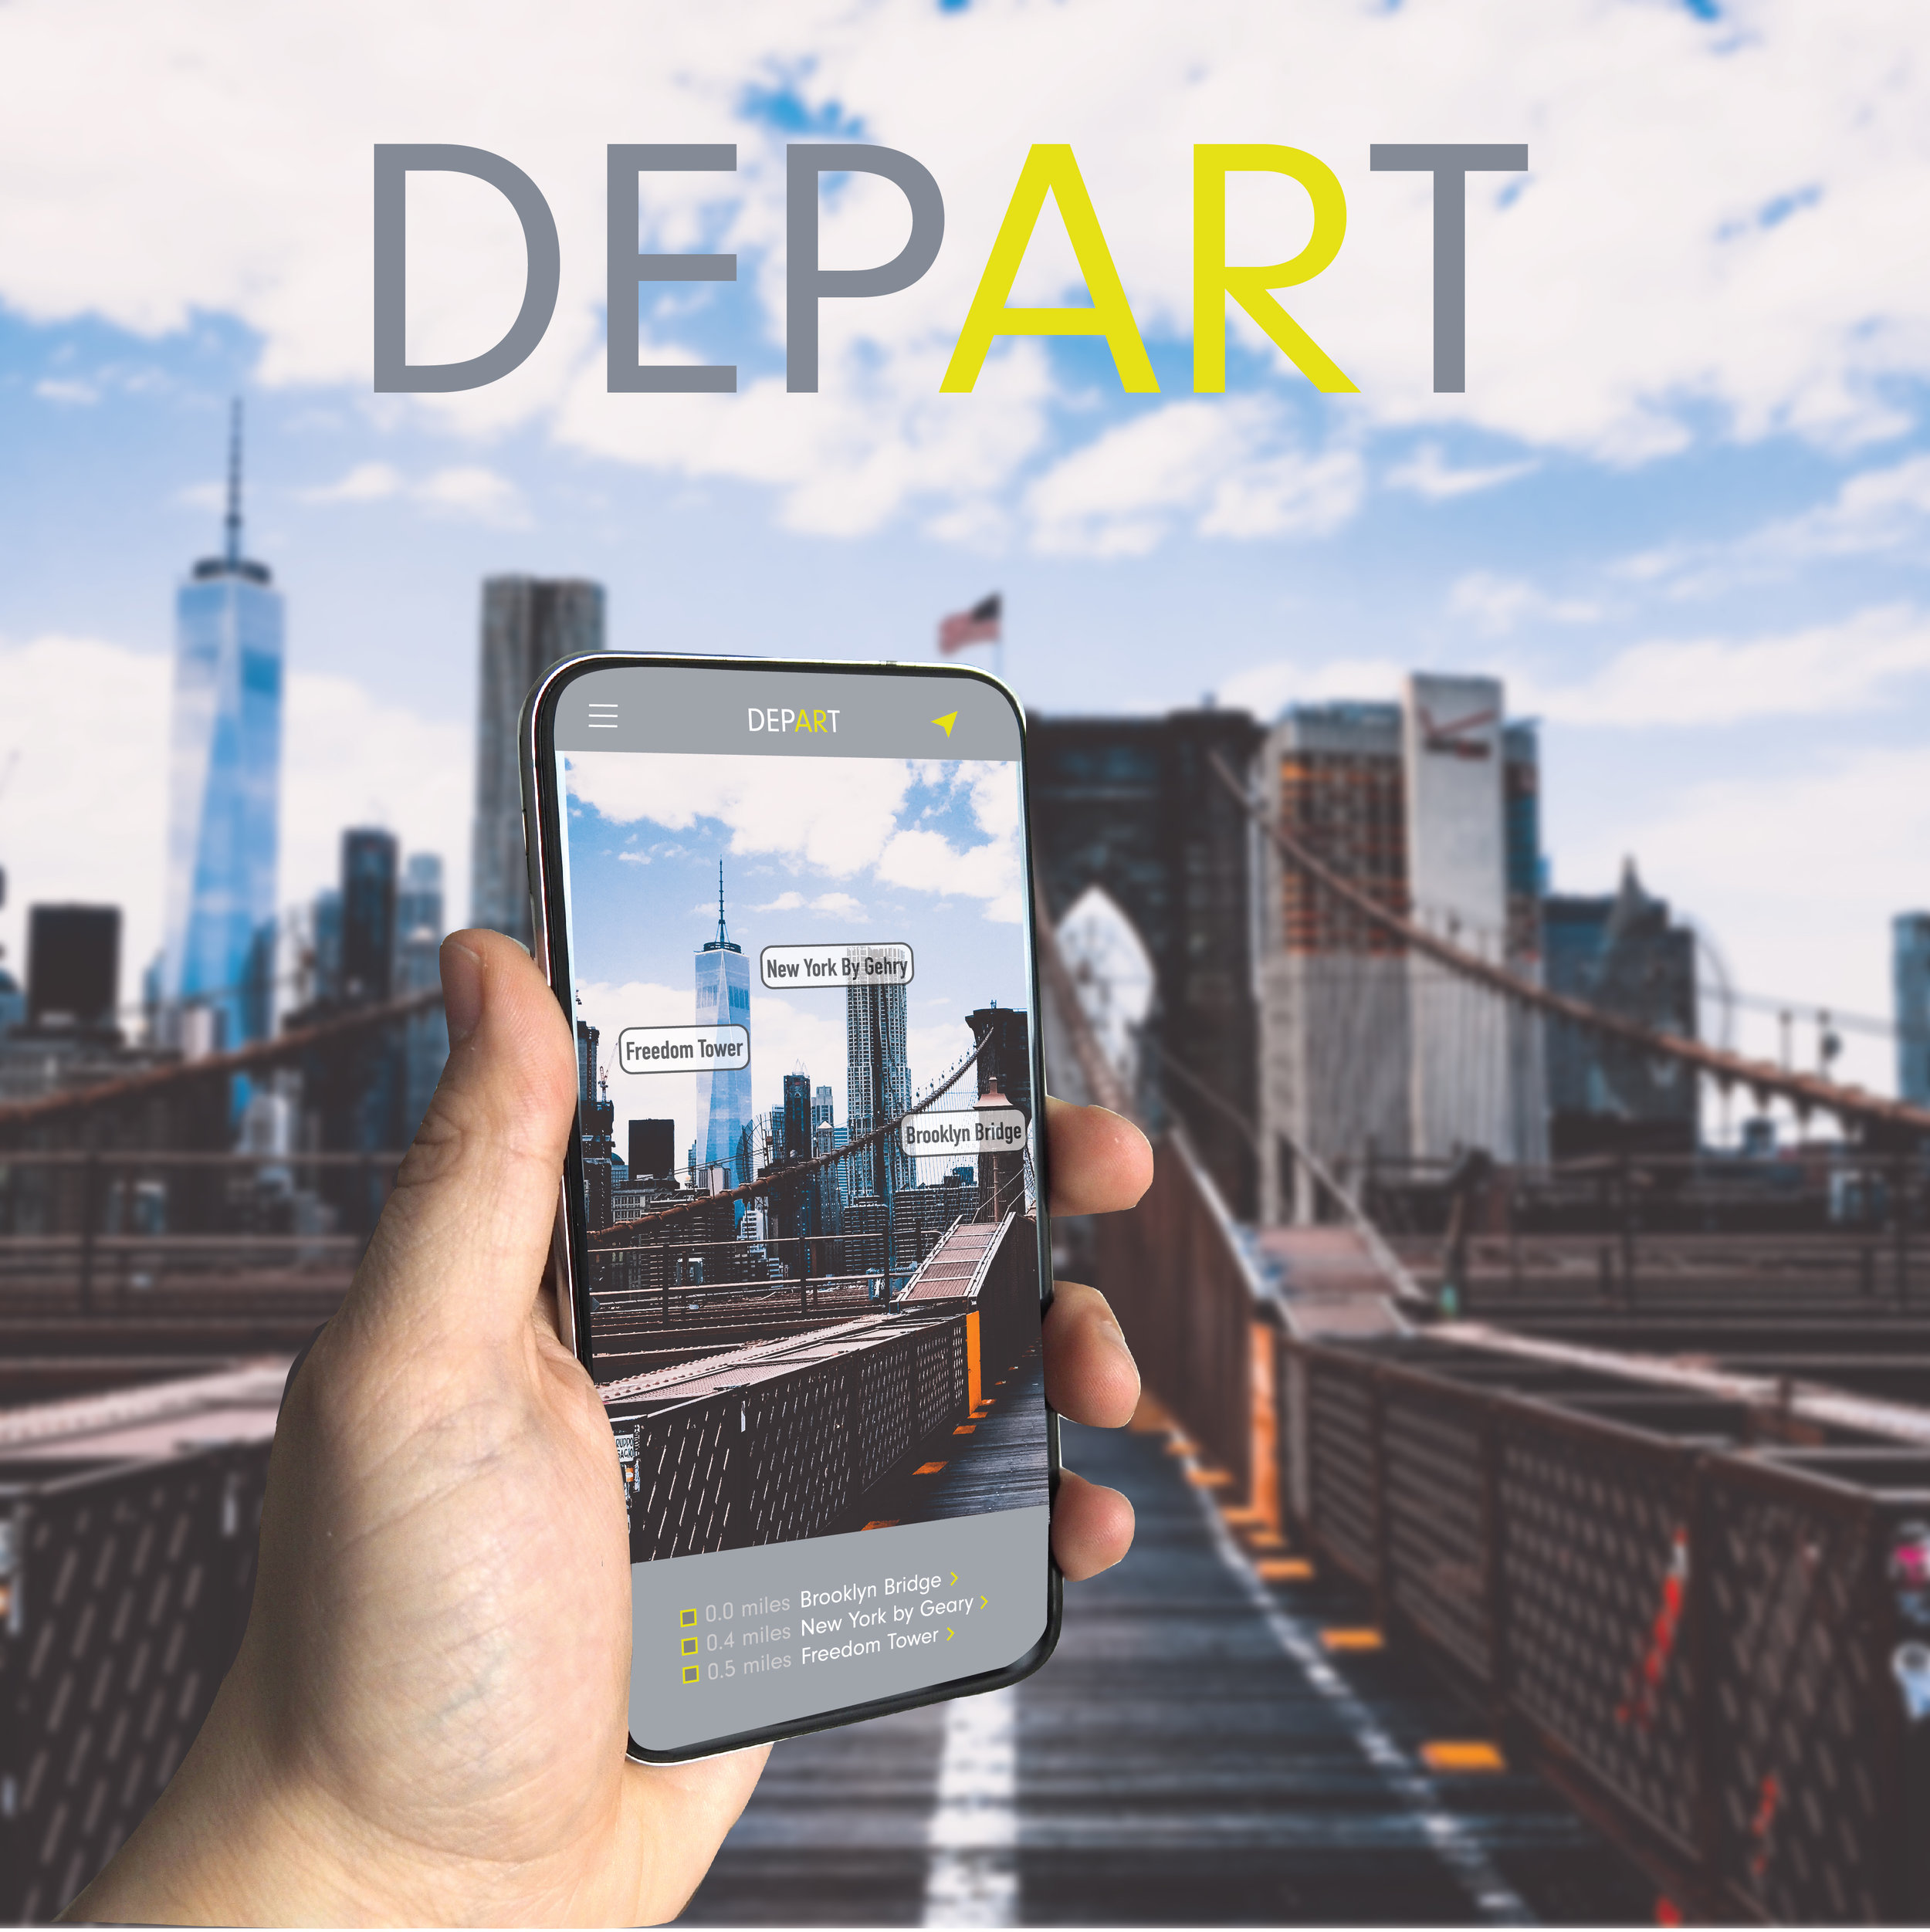 DEPART Augmented Reality Travel - A location-based app with customizable augmented reality tours and travel guides.Sightseeing tours on-demand and at the touch of your finger tips.